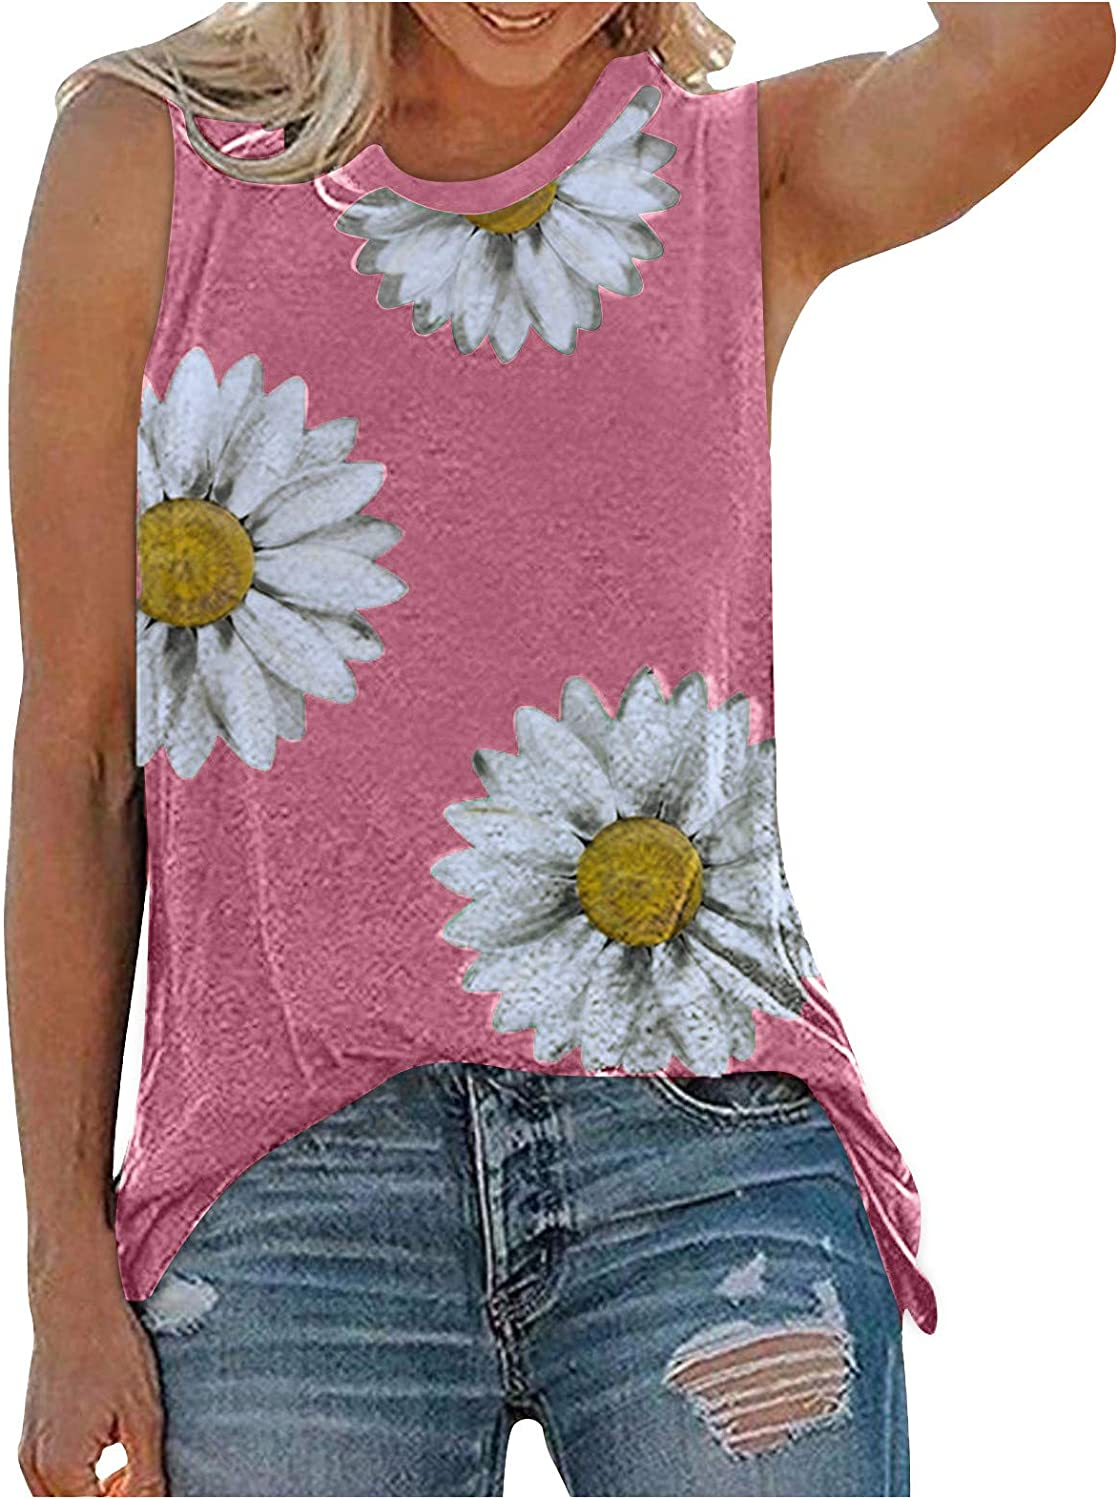 Gerichy Tank Tops for Women Fashion, Summer Tops for Women 2021 Women Summer Sleeveless Vest Top Octopus Print Tank Top Vest Notes Strappy Tops